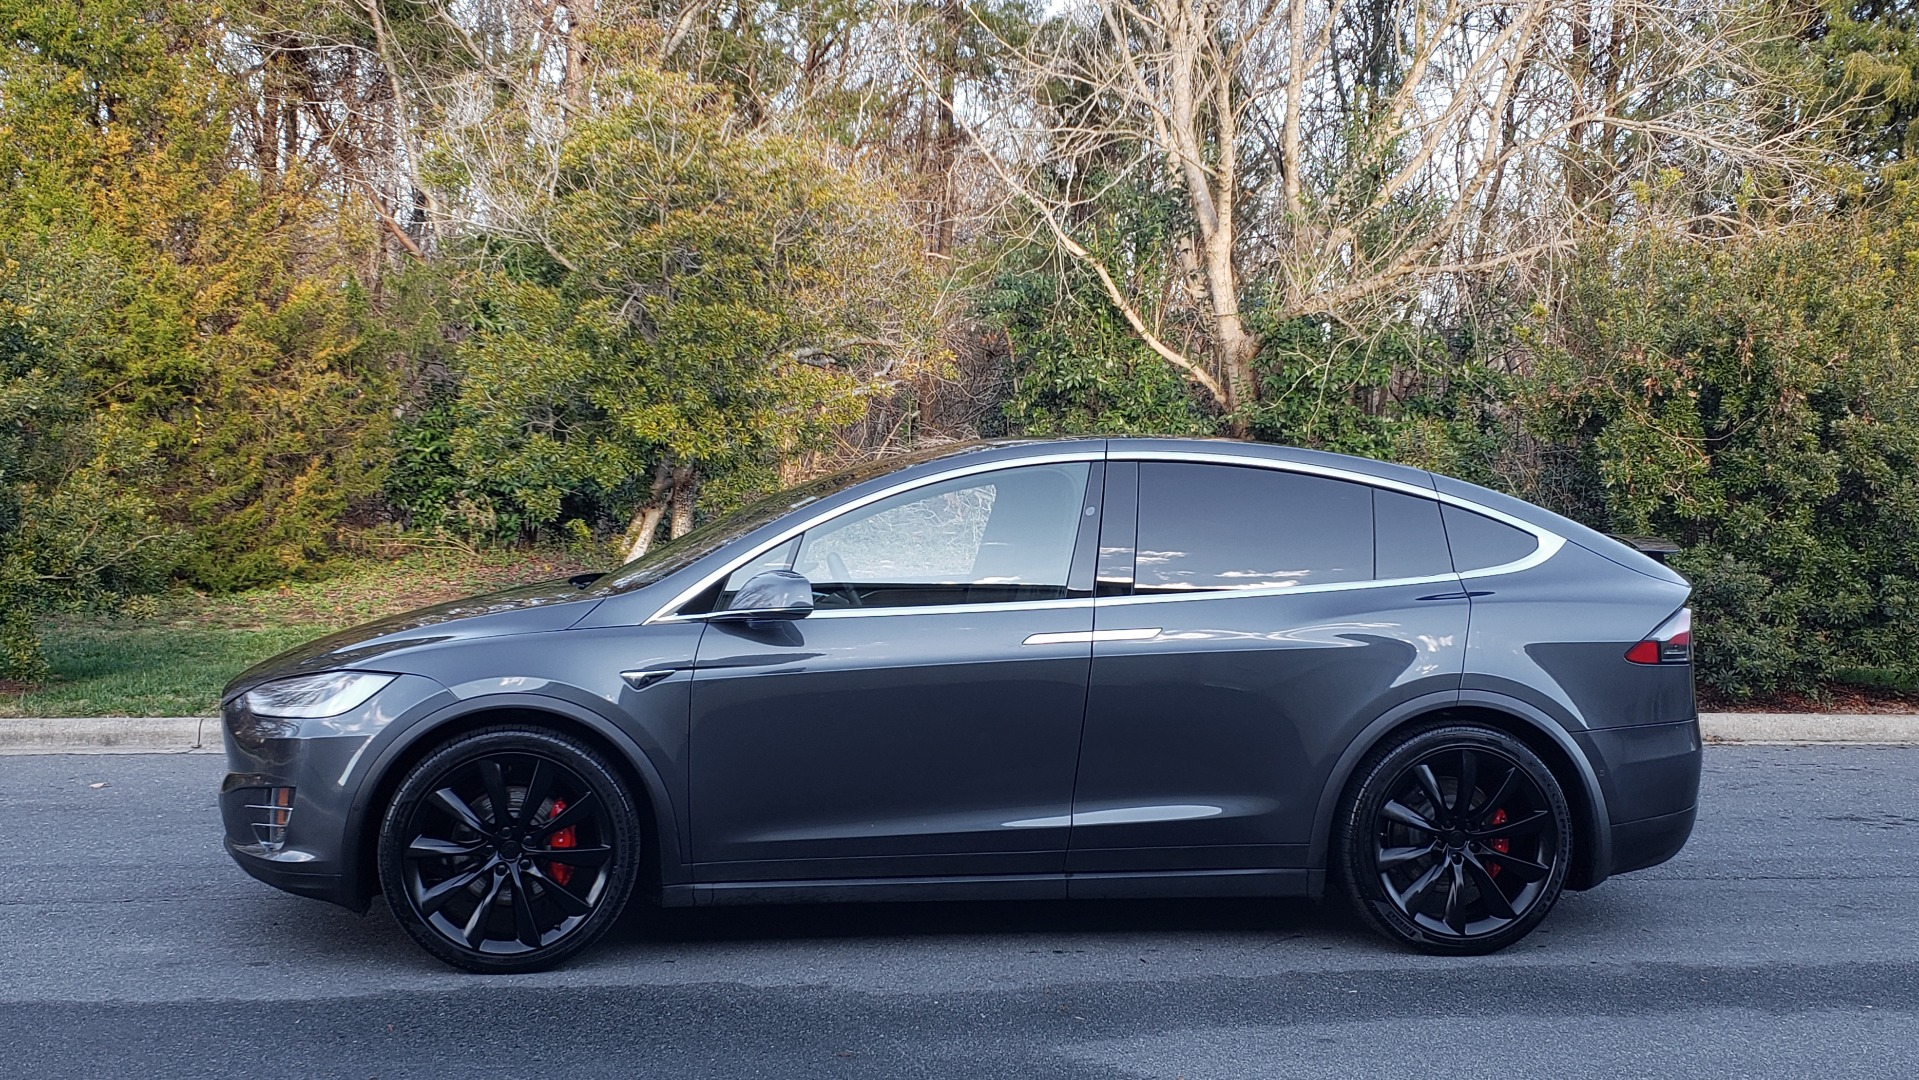 Used 2016 Tesla MODEL X P100D LUDICROUS PERF / PREM / TECH / AUTO PILOT / TOWING for sale Sold at Formula Imports in Charlotte NC 28227 2